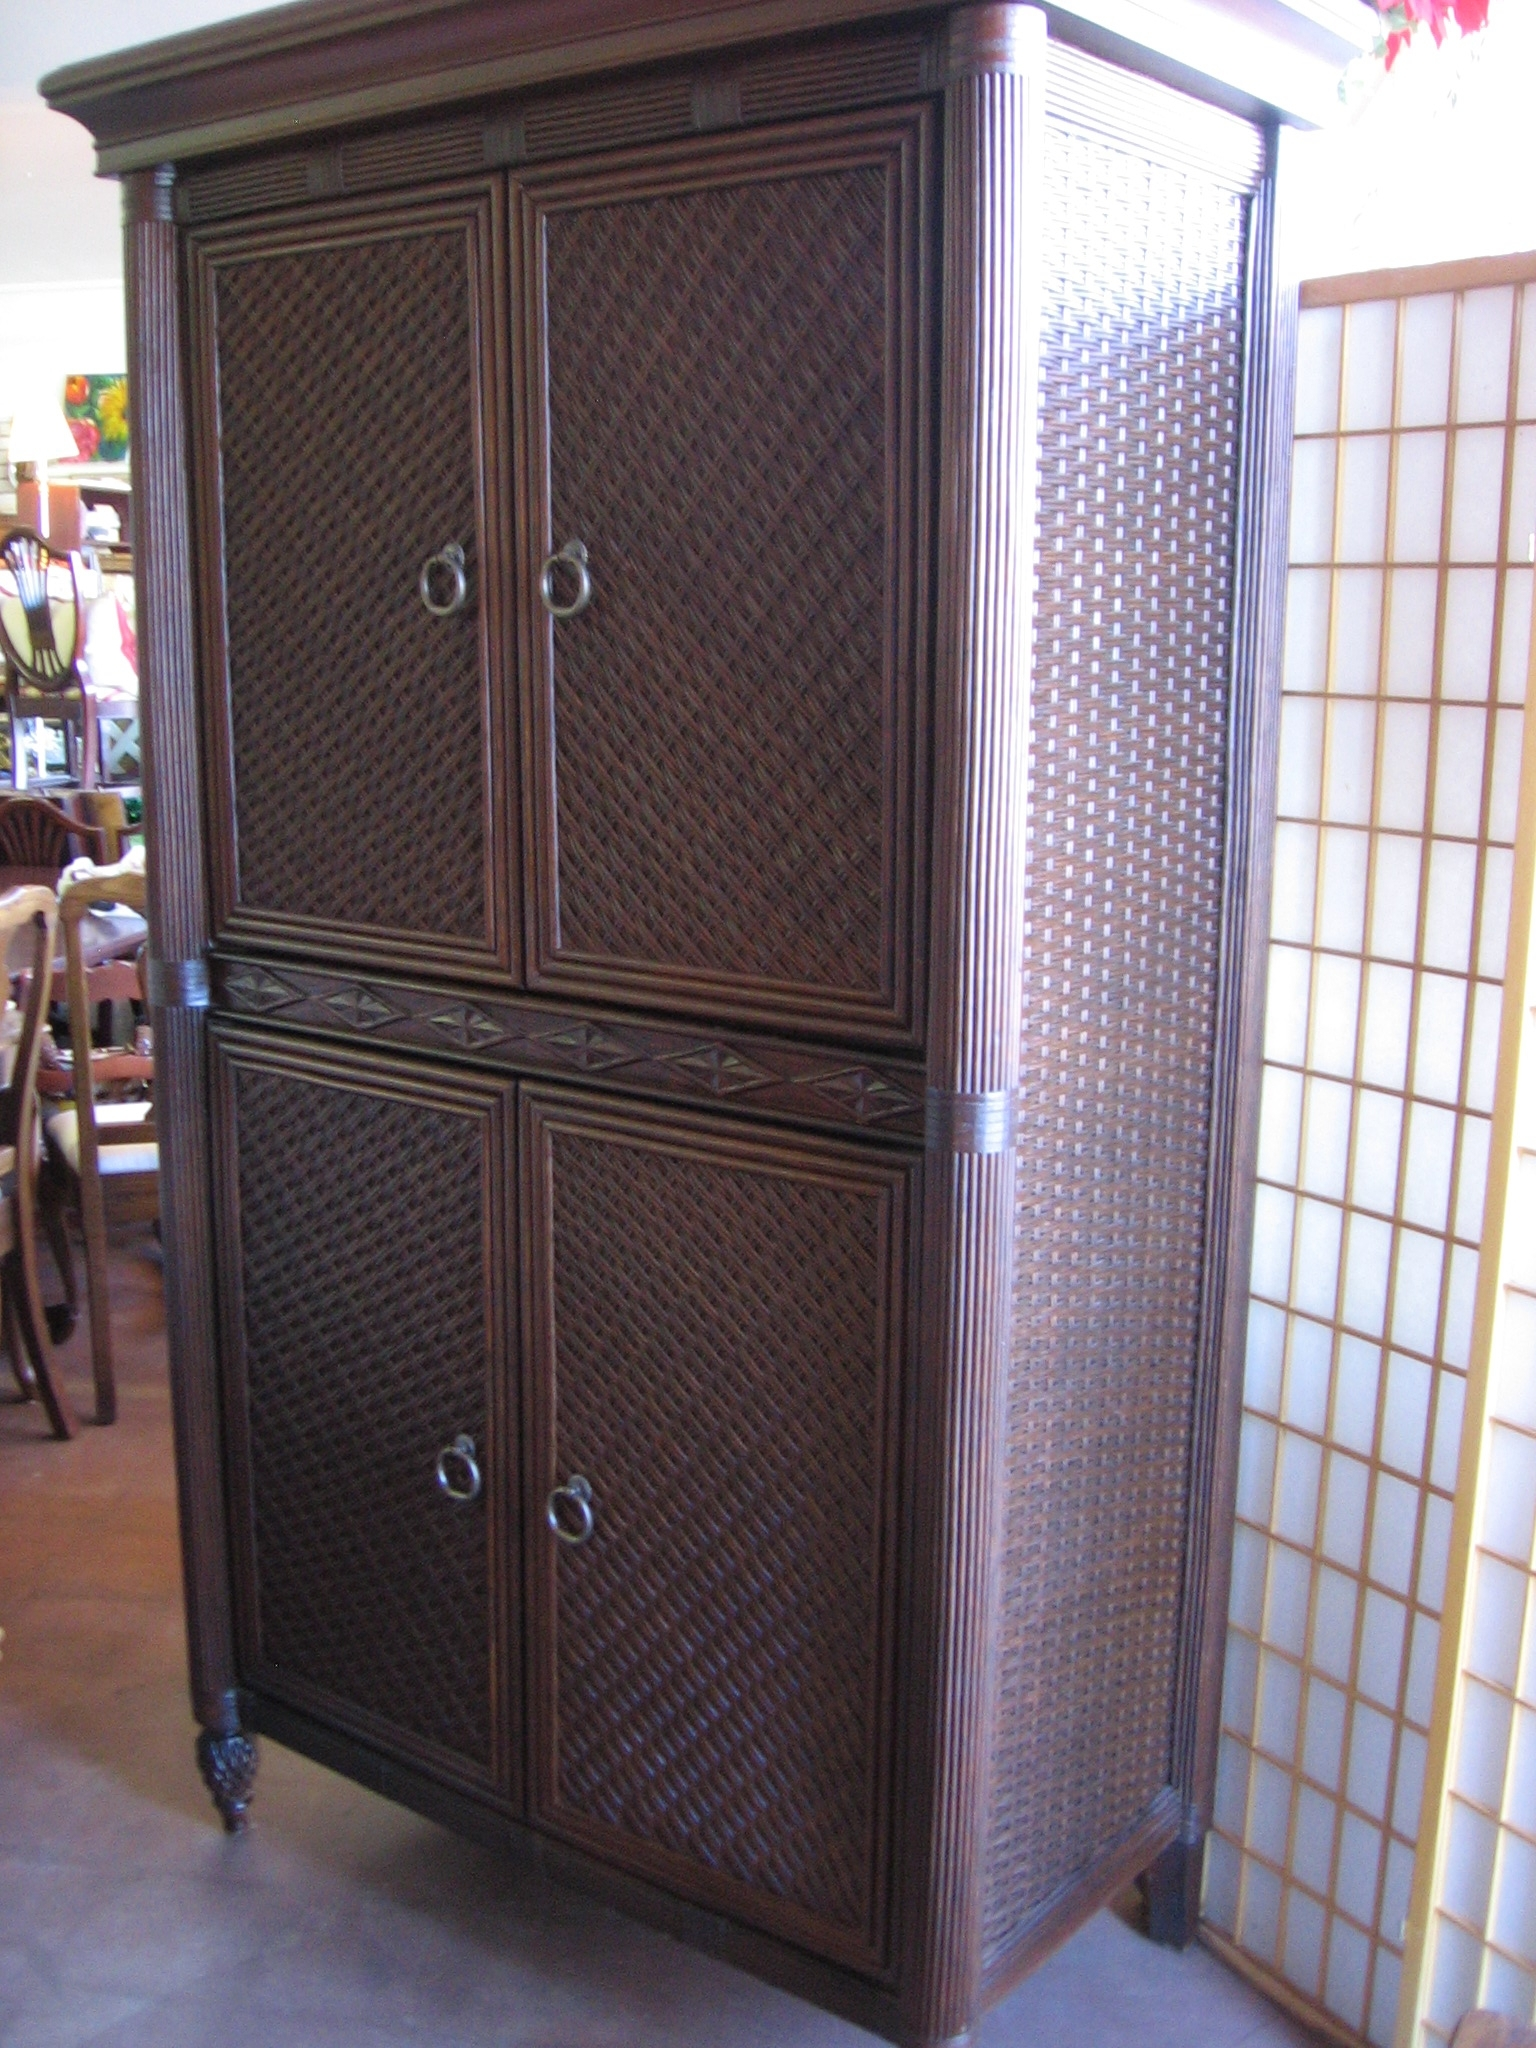 Favorite Wicker Armoire Wardrobes Intended For Bedroom: Antique Interior Storage Design With Wardrobe Armoire (View 4 of 15)